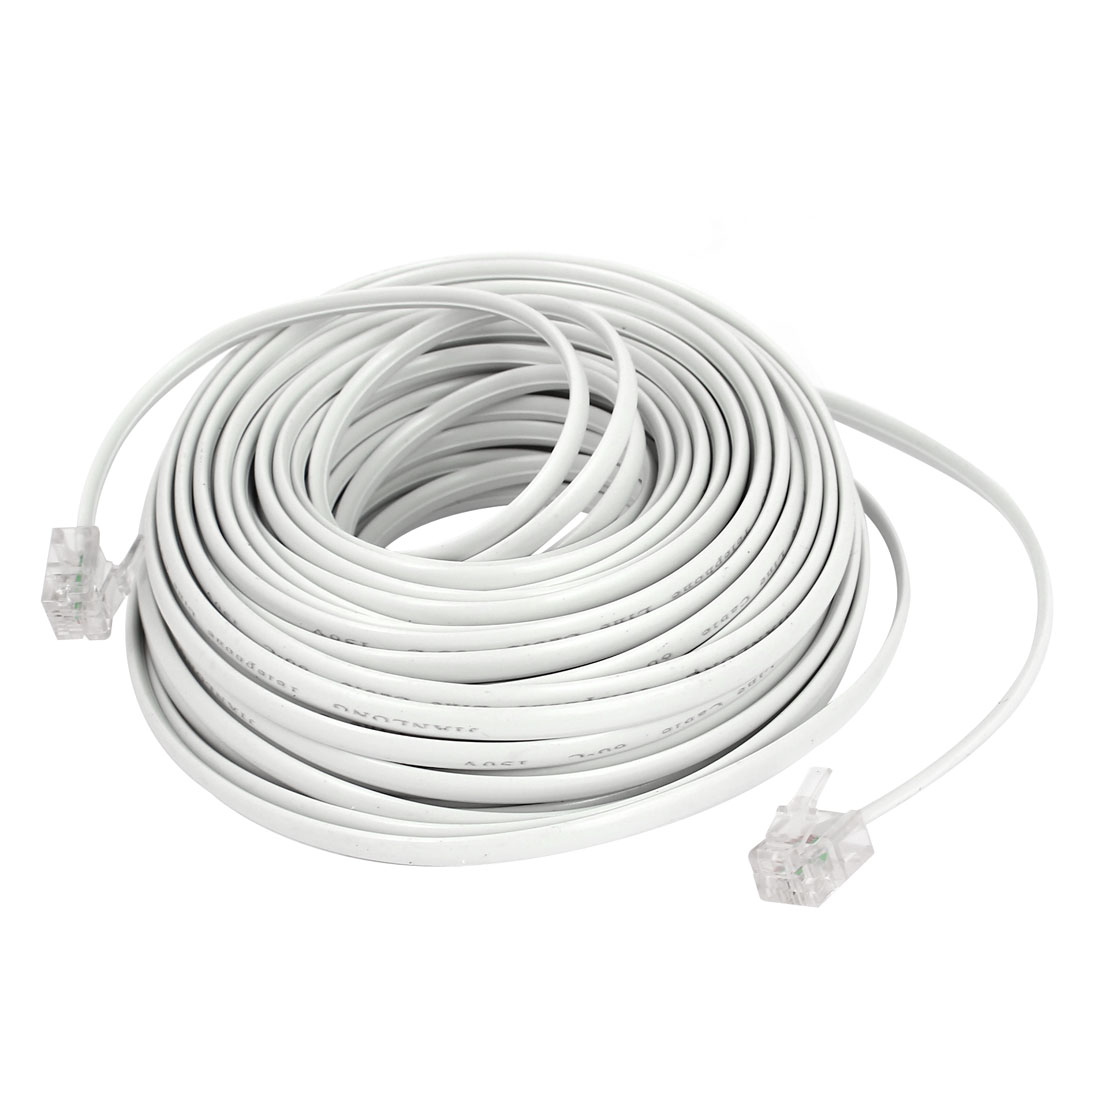 15Mm 50Ft Long RJ11 6P2C Male to Male Plug Telephone Phone Connector Cable Lead